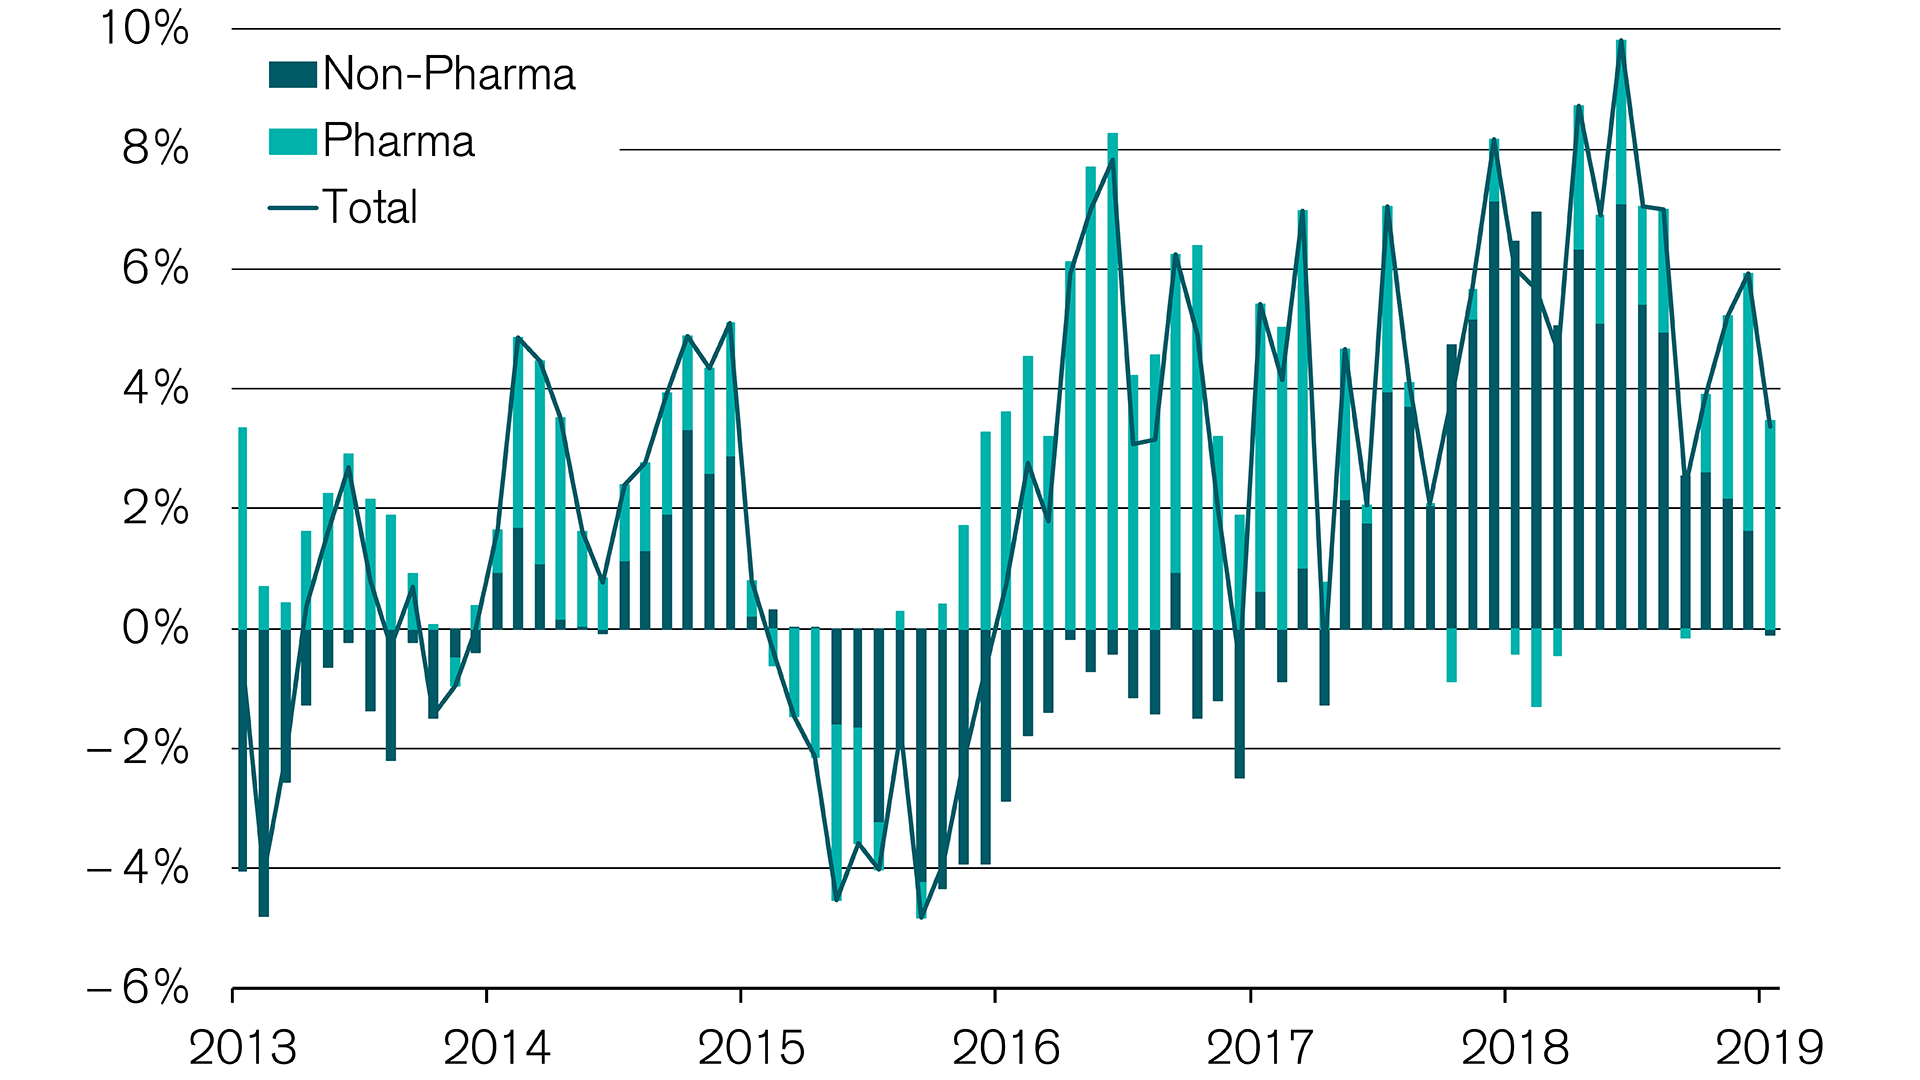 Swiss economy supported by pharma exports